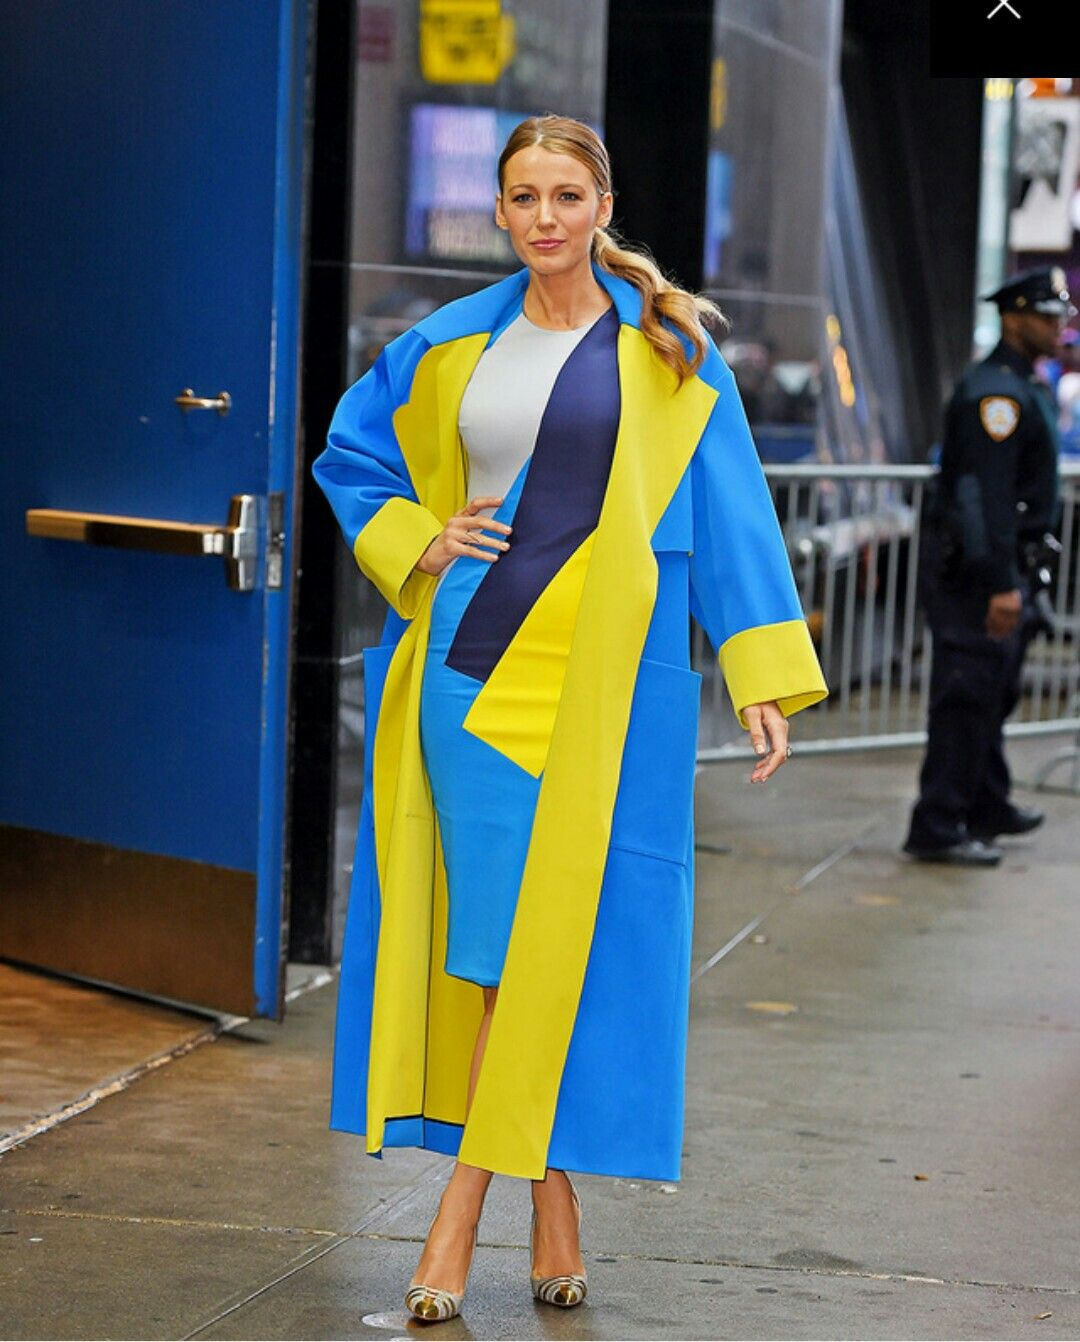 Pin by Yummee on Fashion   Blake lively style, Celebrity